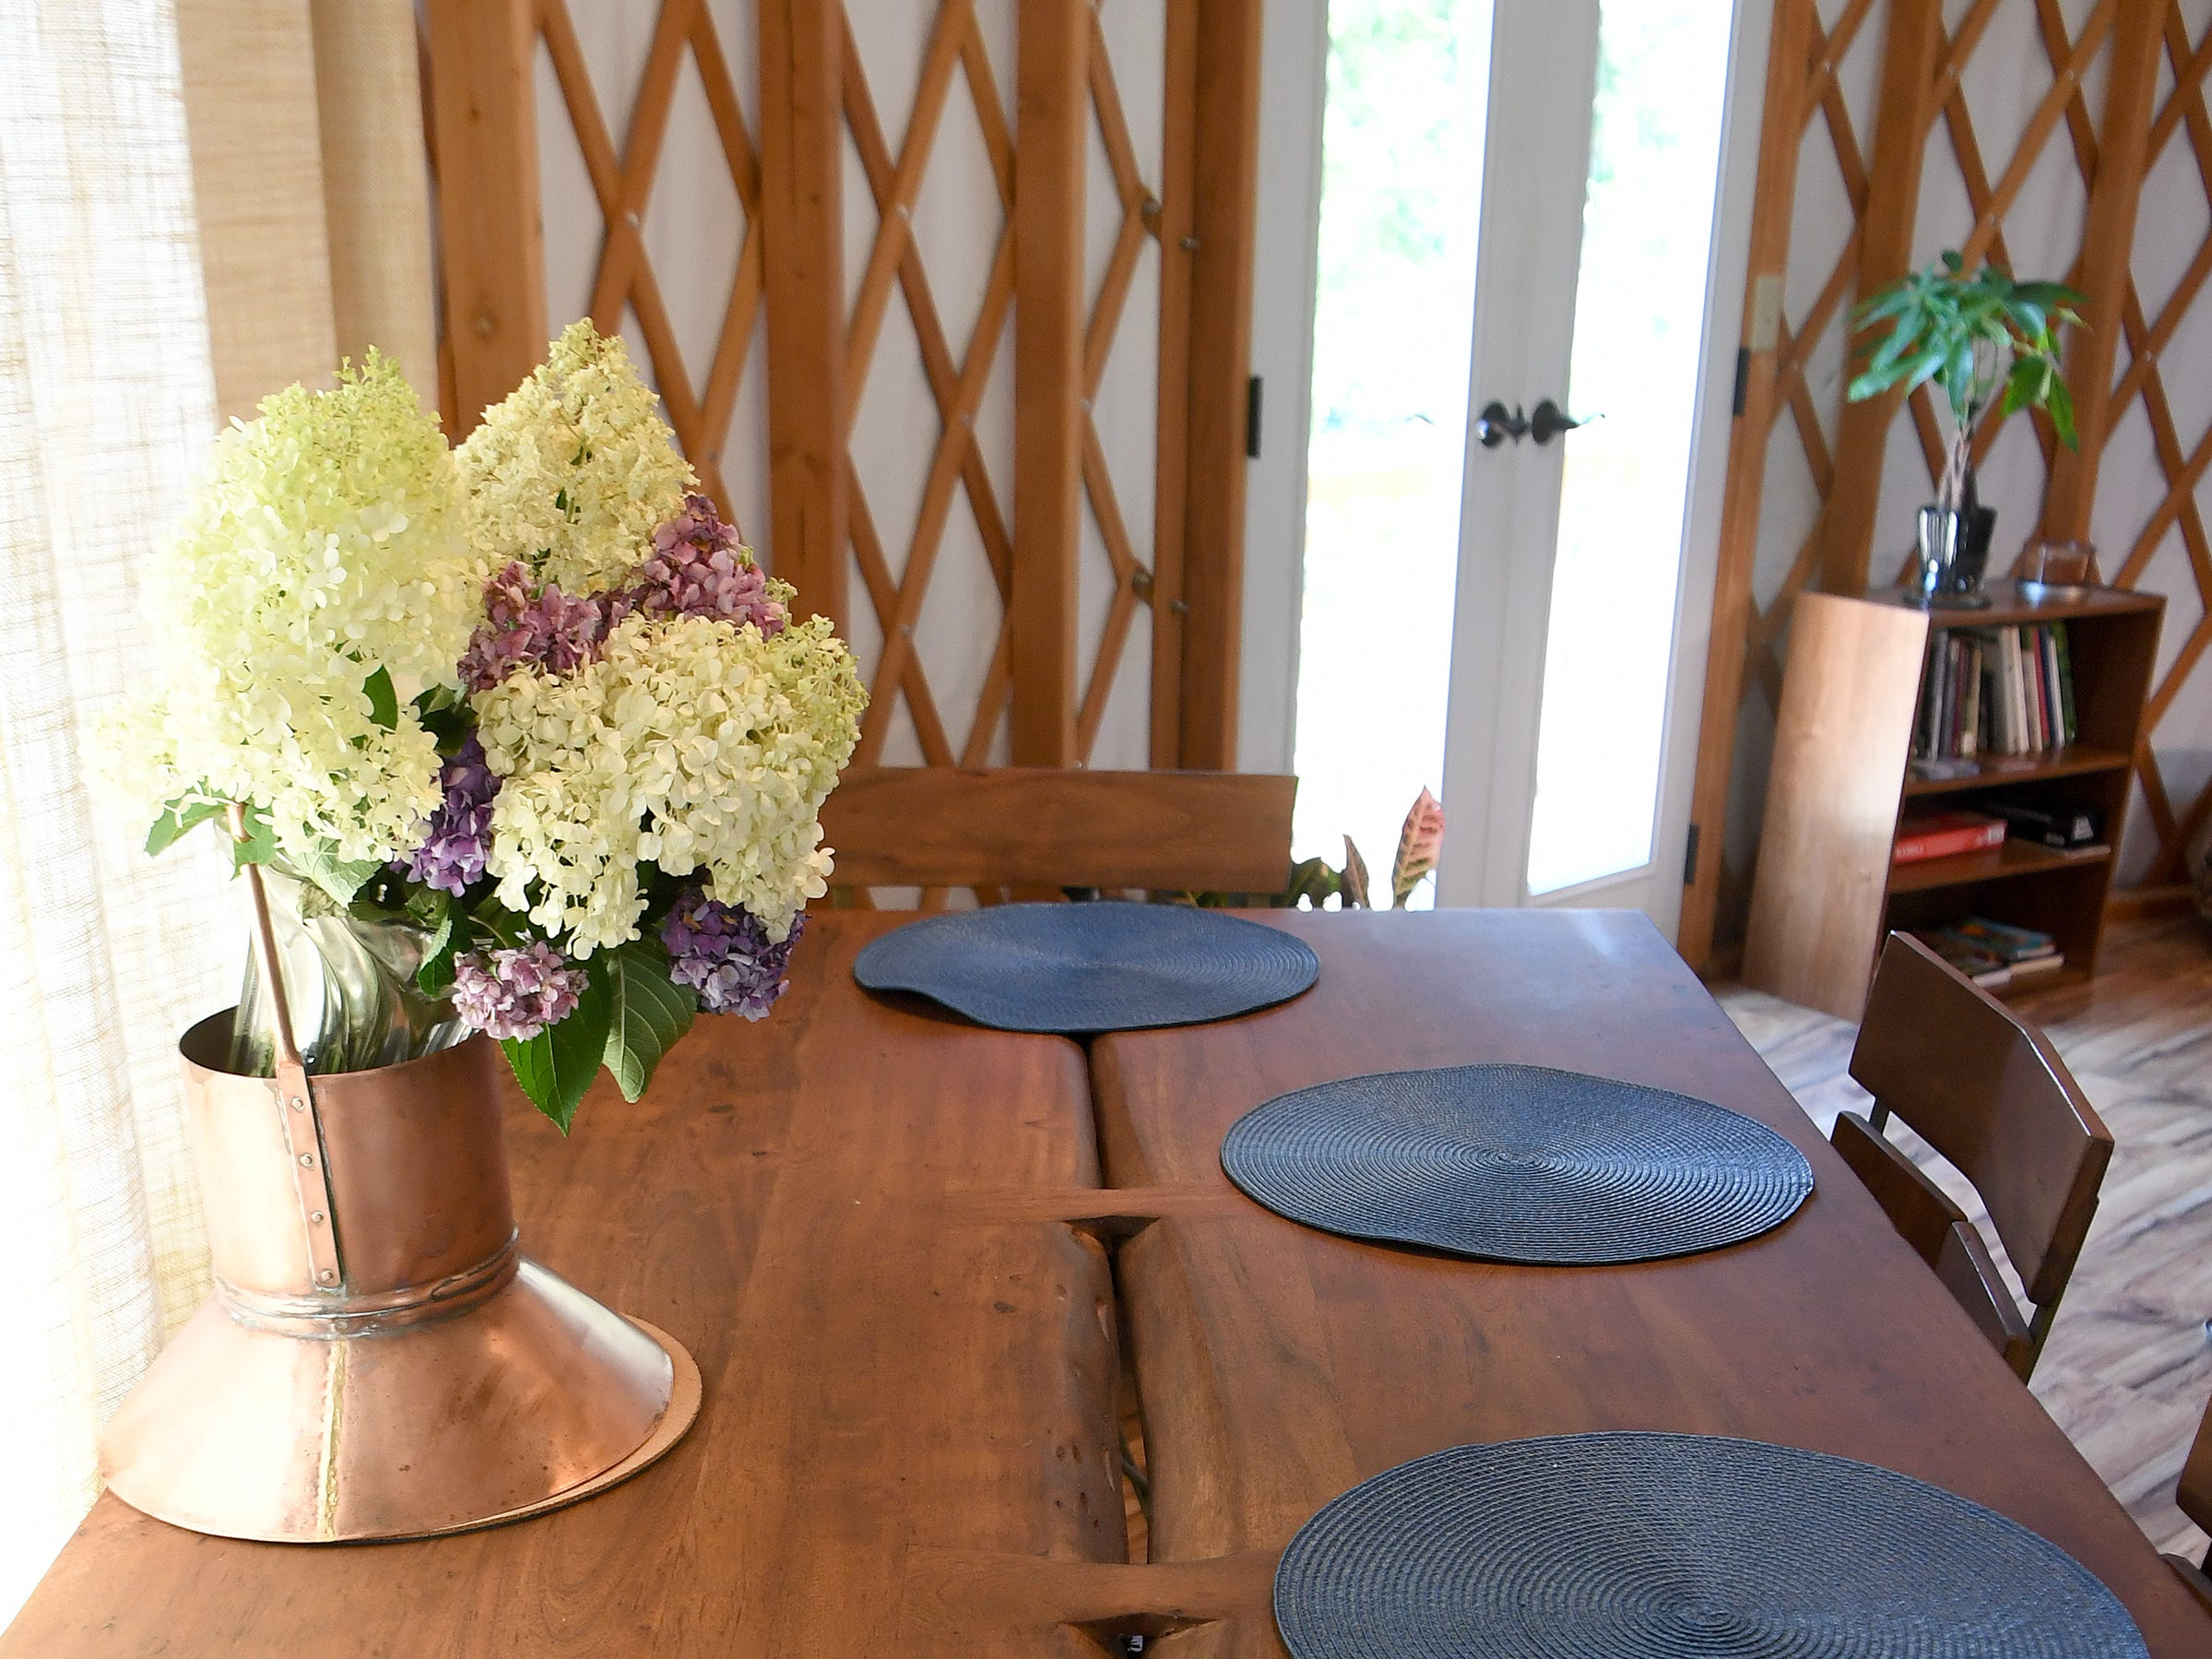 A dining area of the Yin Yurt, an AirBnB rental on Ricardo Fernandez's property in Clyde.